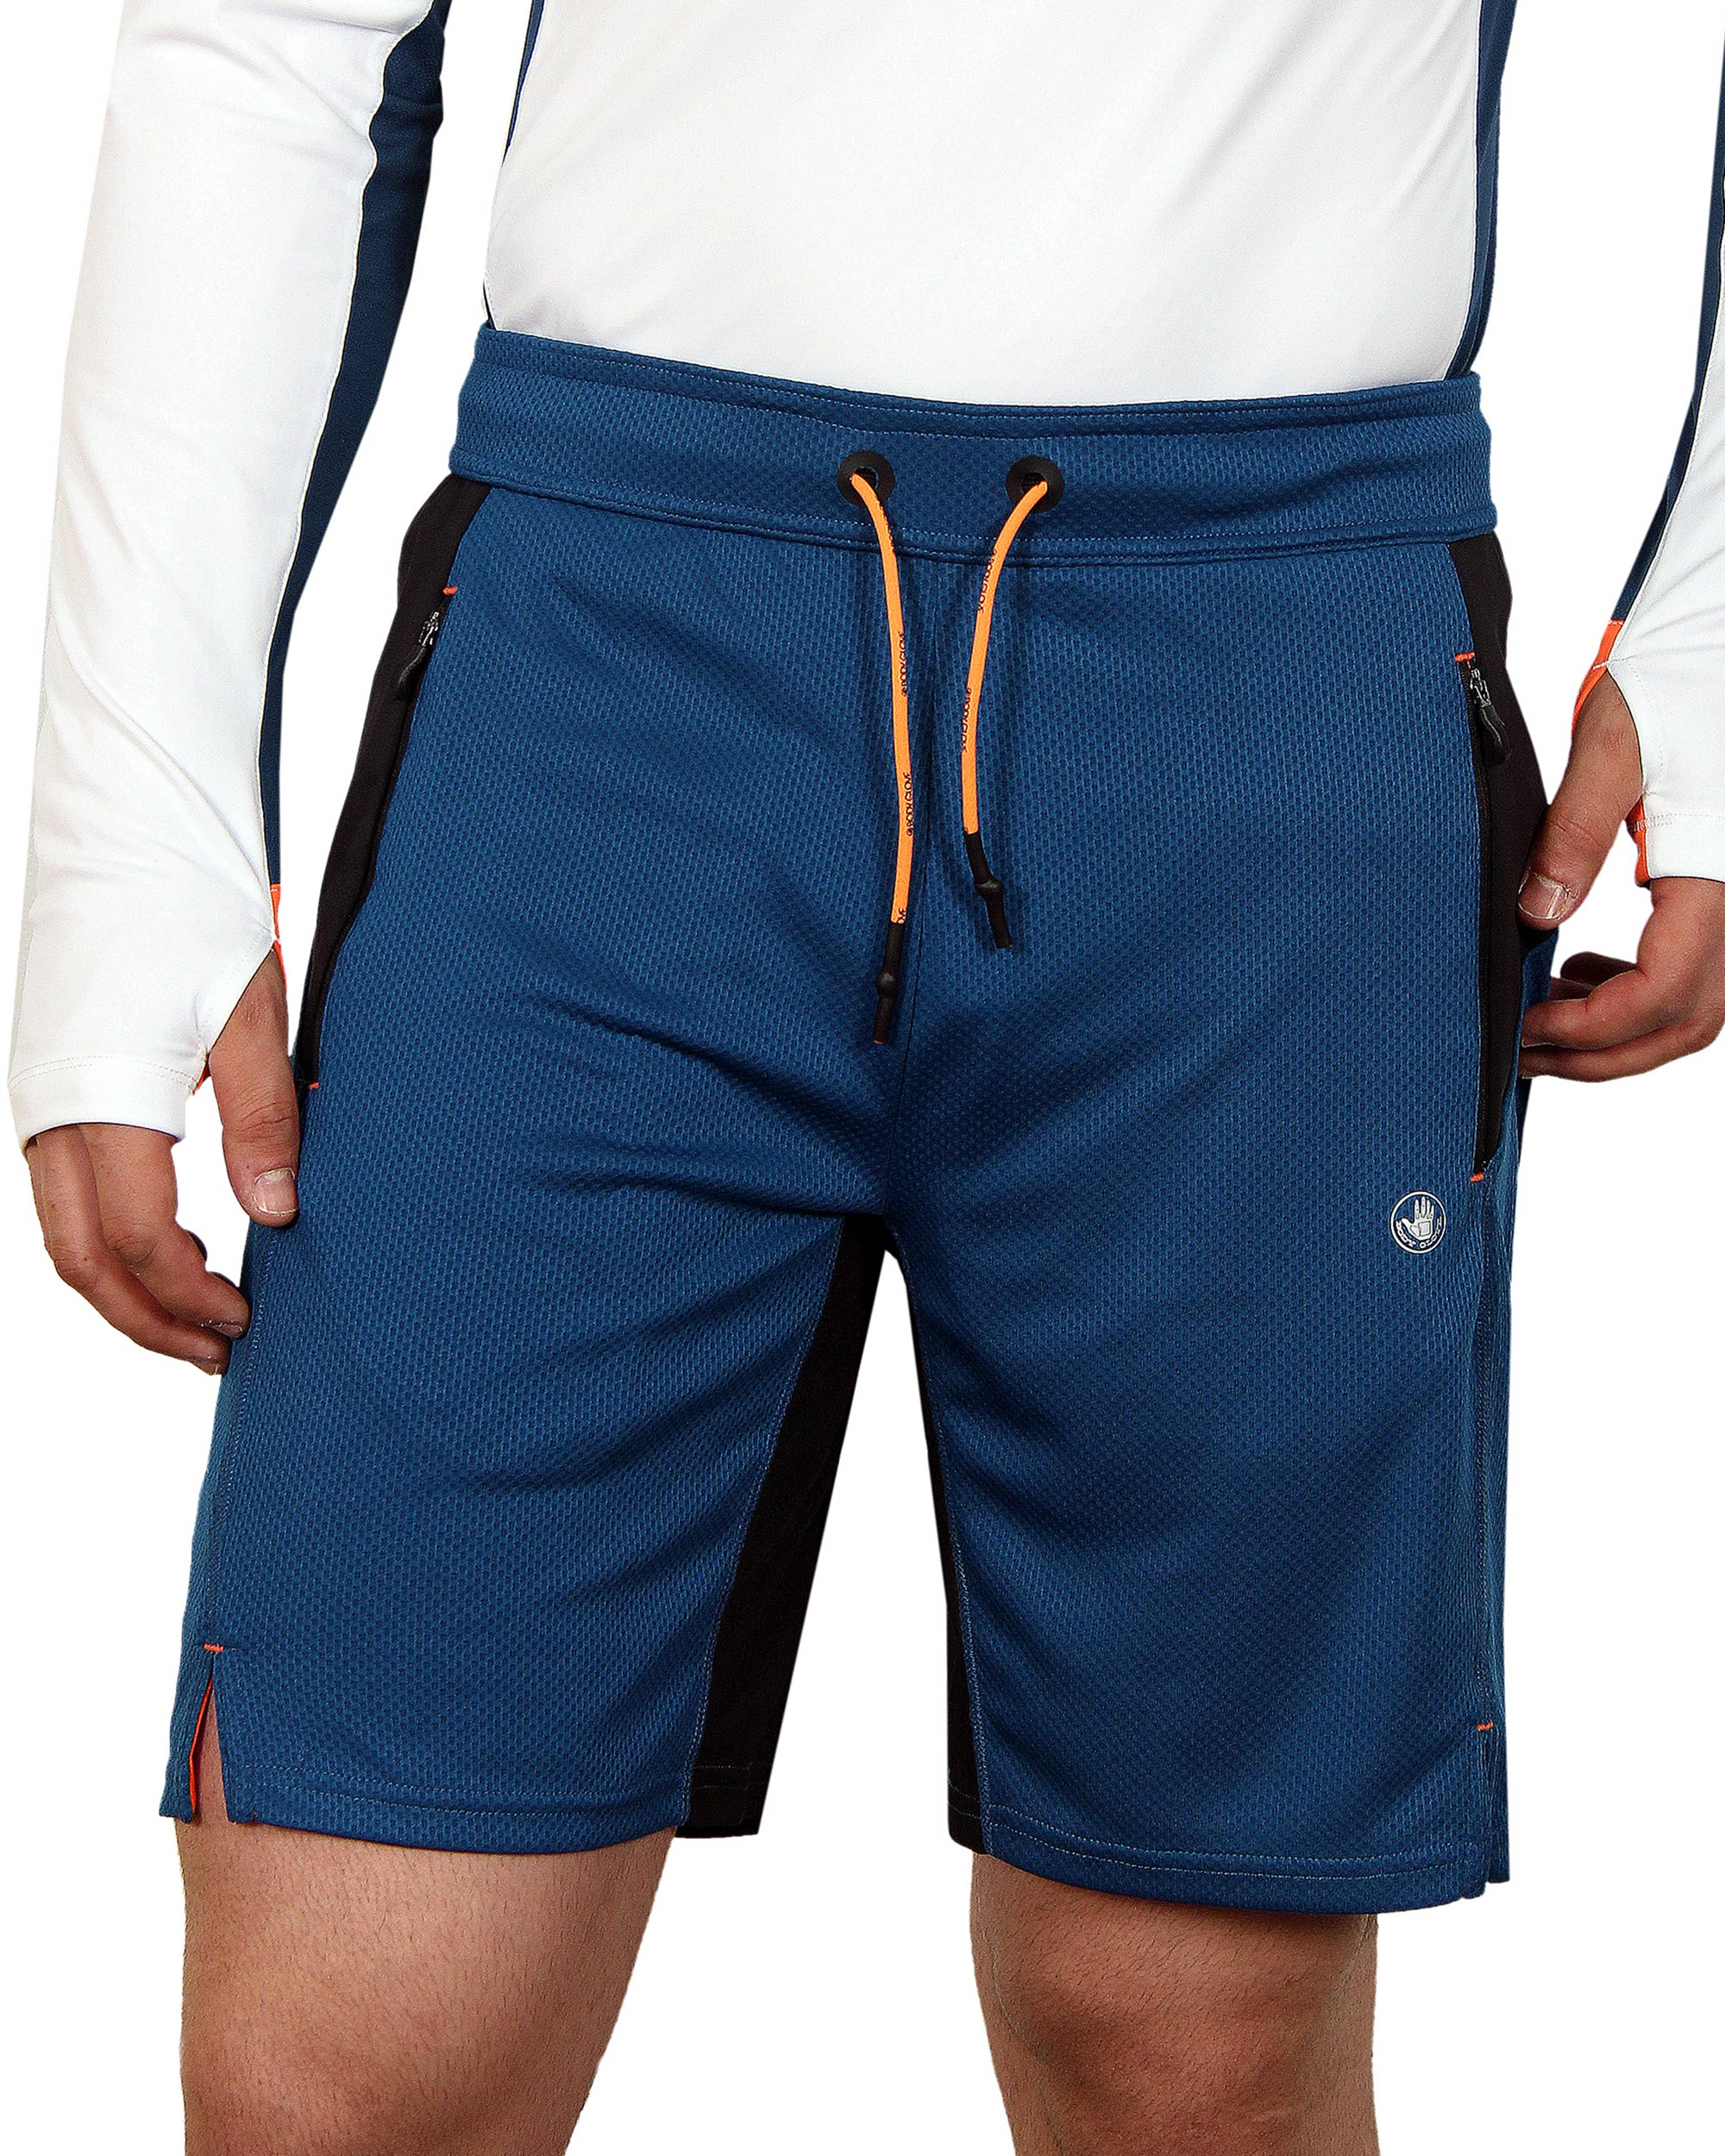 Men's Performance Short - Blue